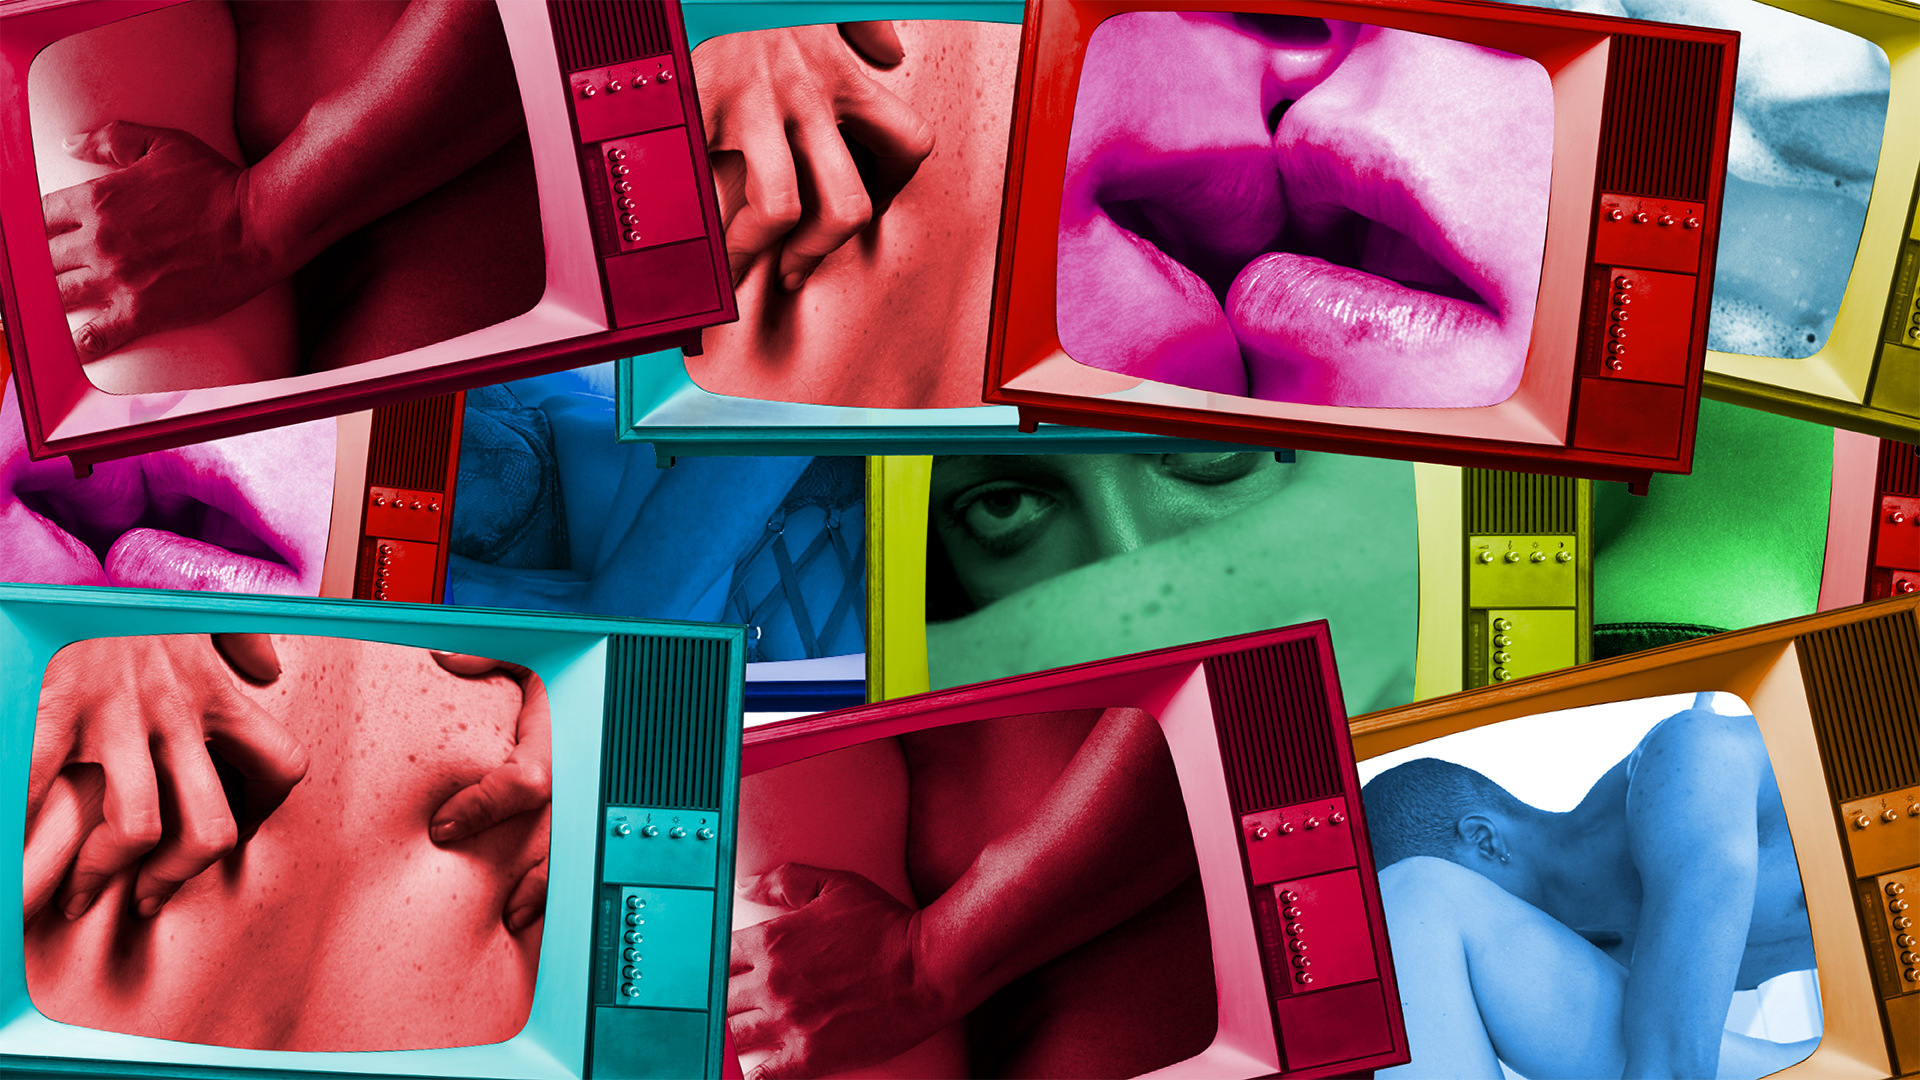 We've Done the Research, and These Are the Best Porn Sites for Women